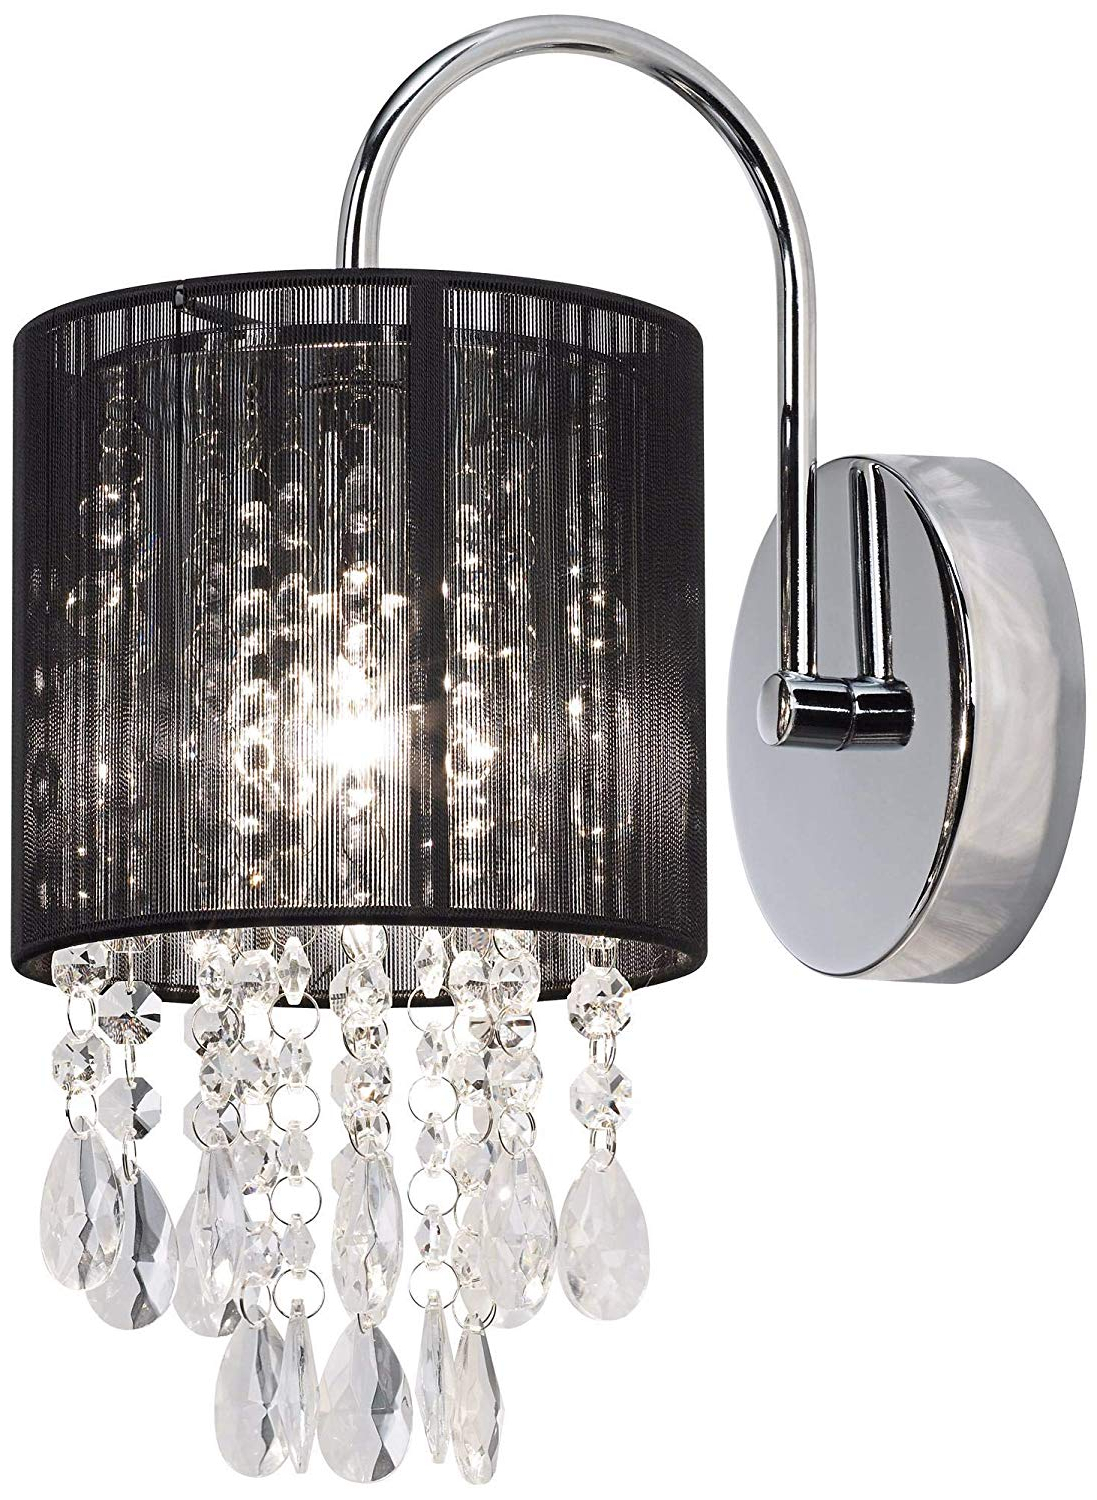 "Kraker 1 Light Single Cylinder Pendants With Latest Modern Wall Light Sconce Chrome Hardwired 12"" High Fixture Black Thread  Shade Crystal Accents For Bedroom Bathroom Hallway – Possini Euro Design (View 9 of 25)"